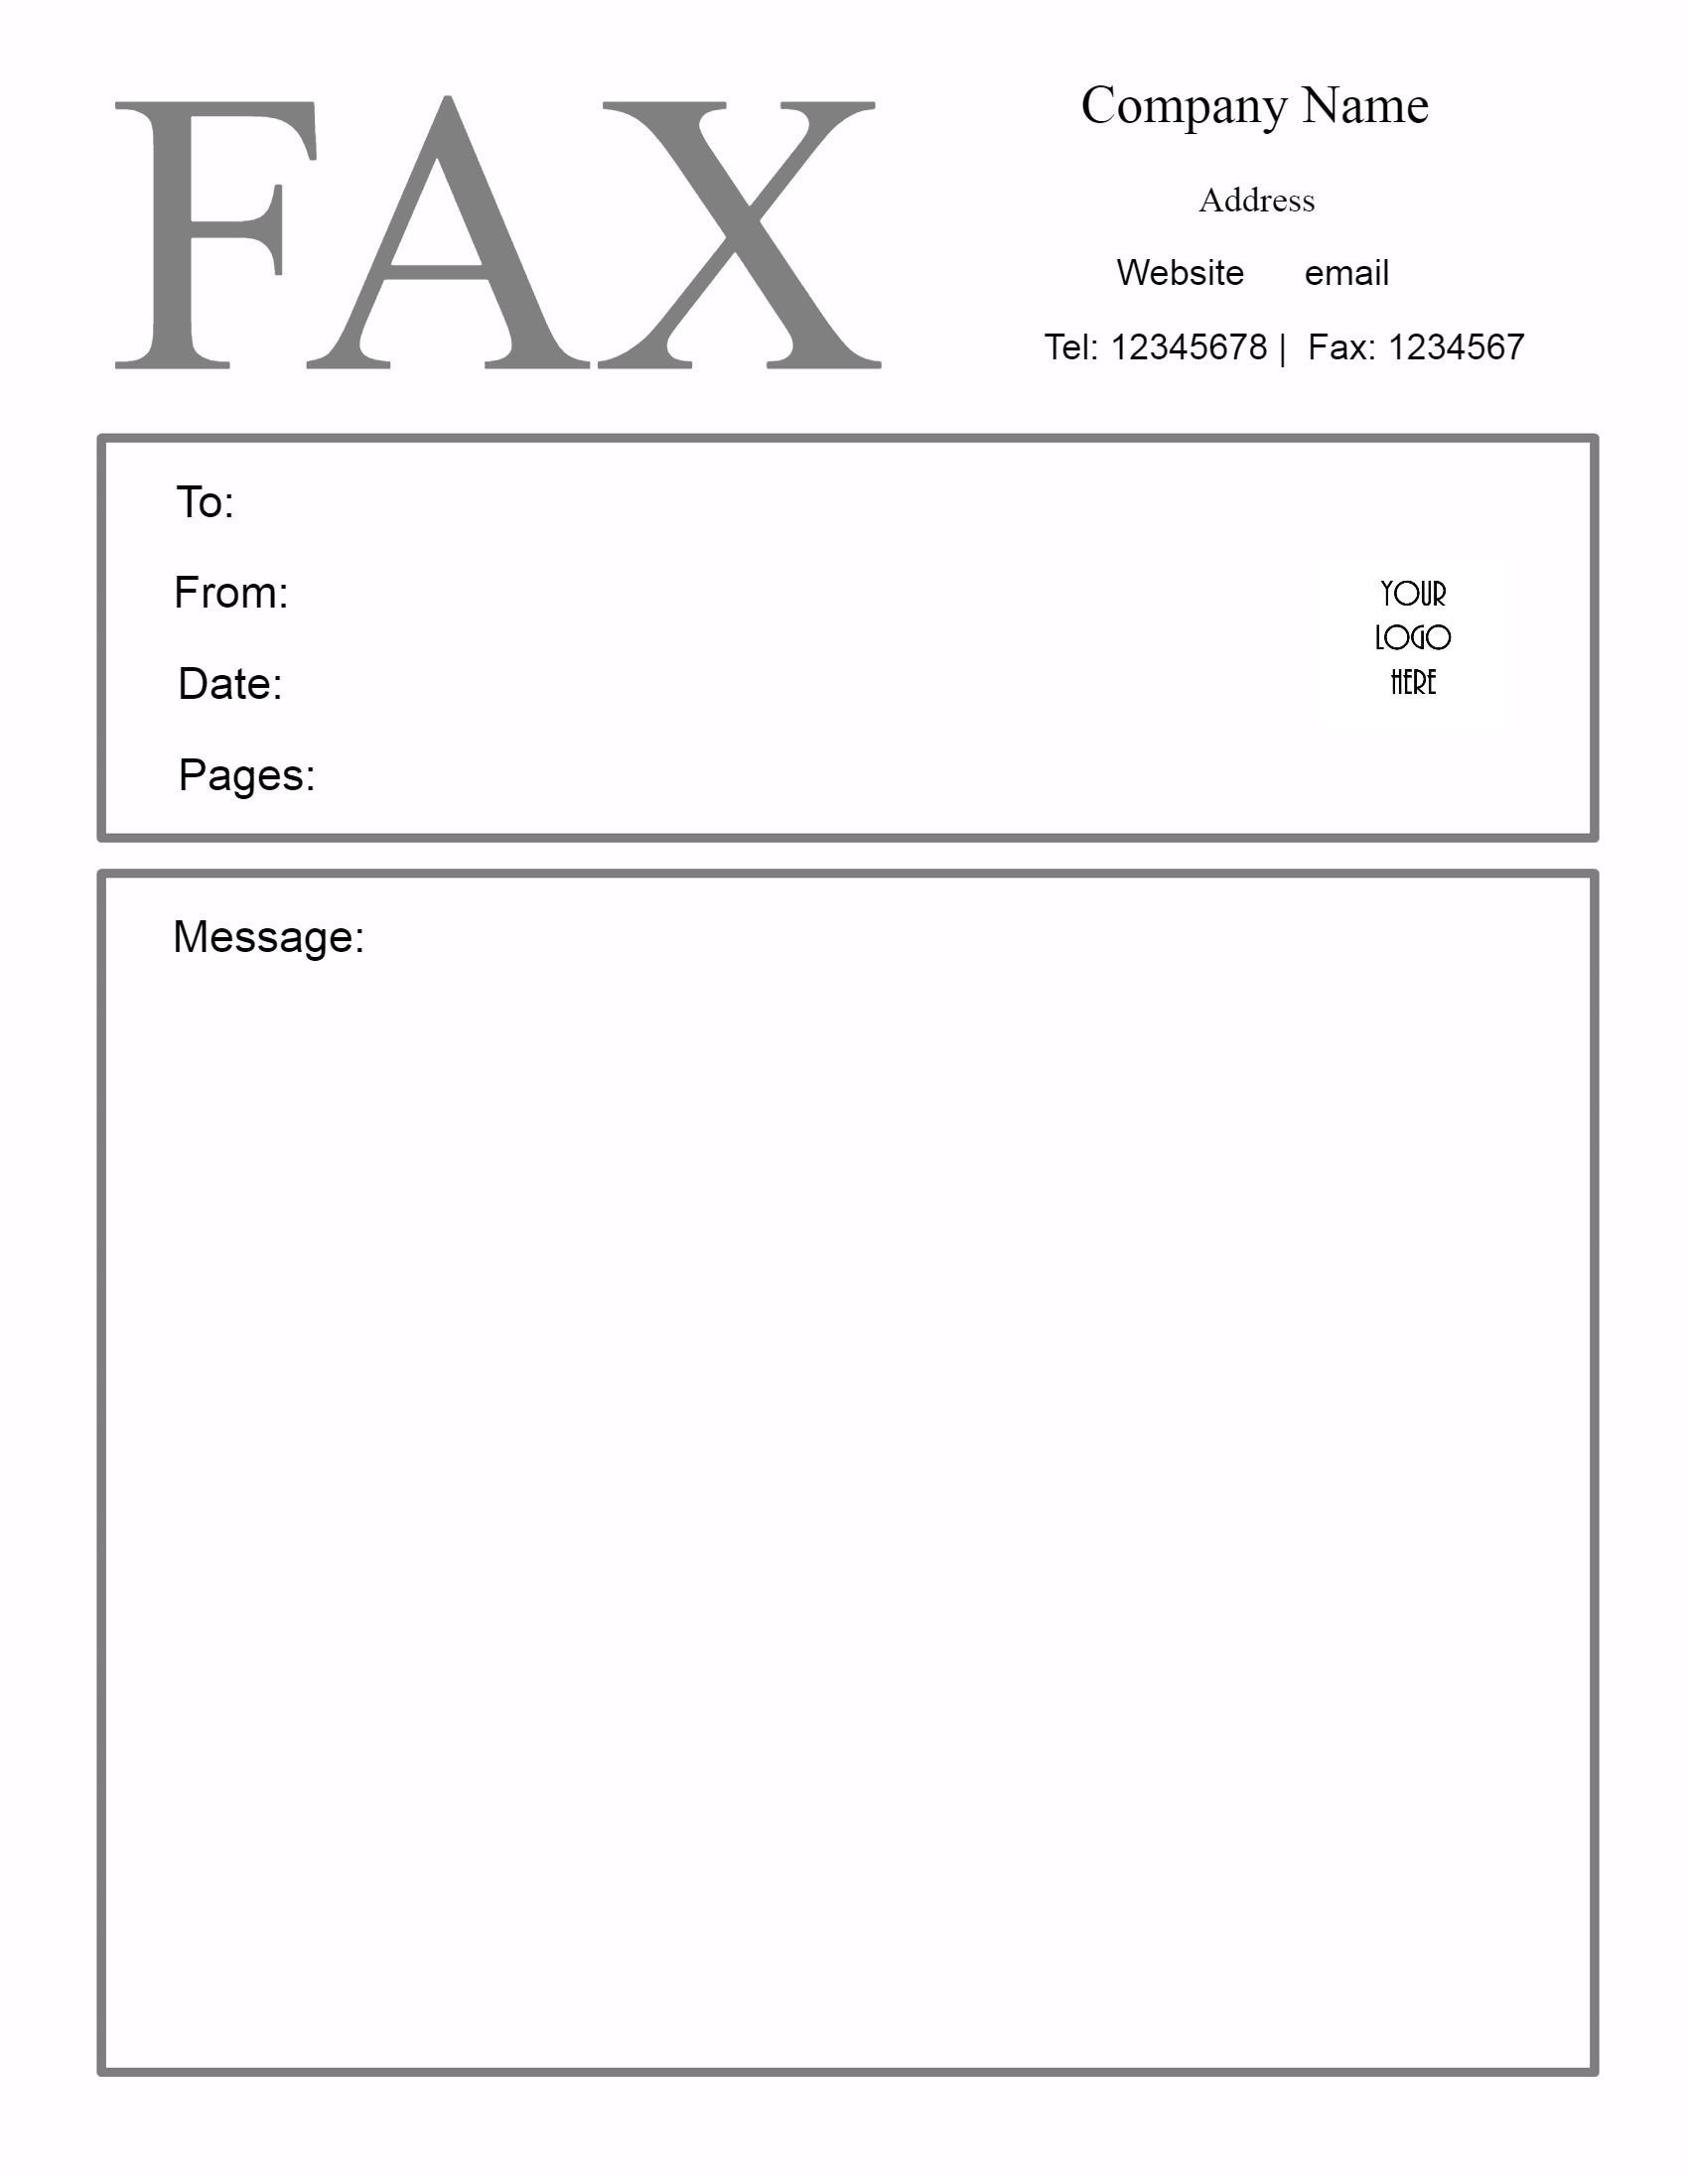 Fax Cover Letter Template Free Fax Cover Letter Template